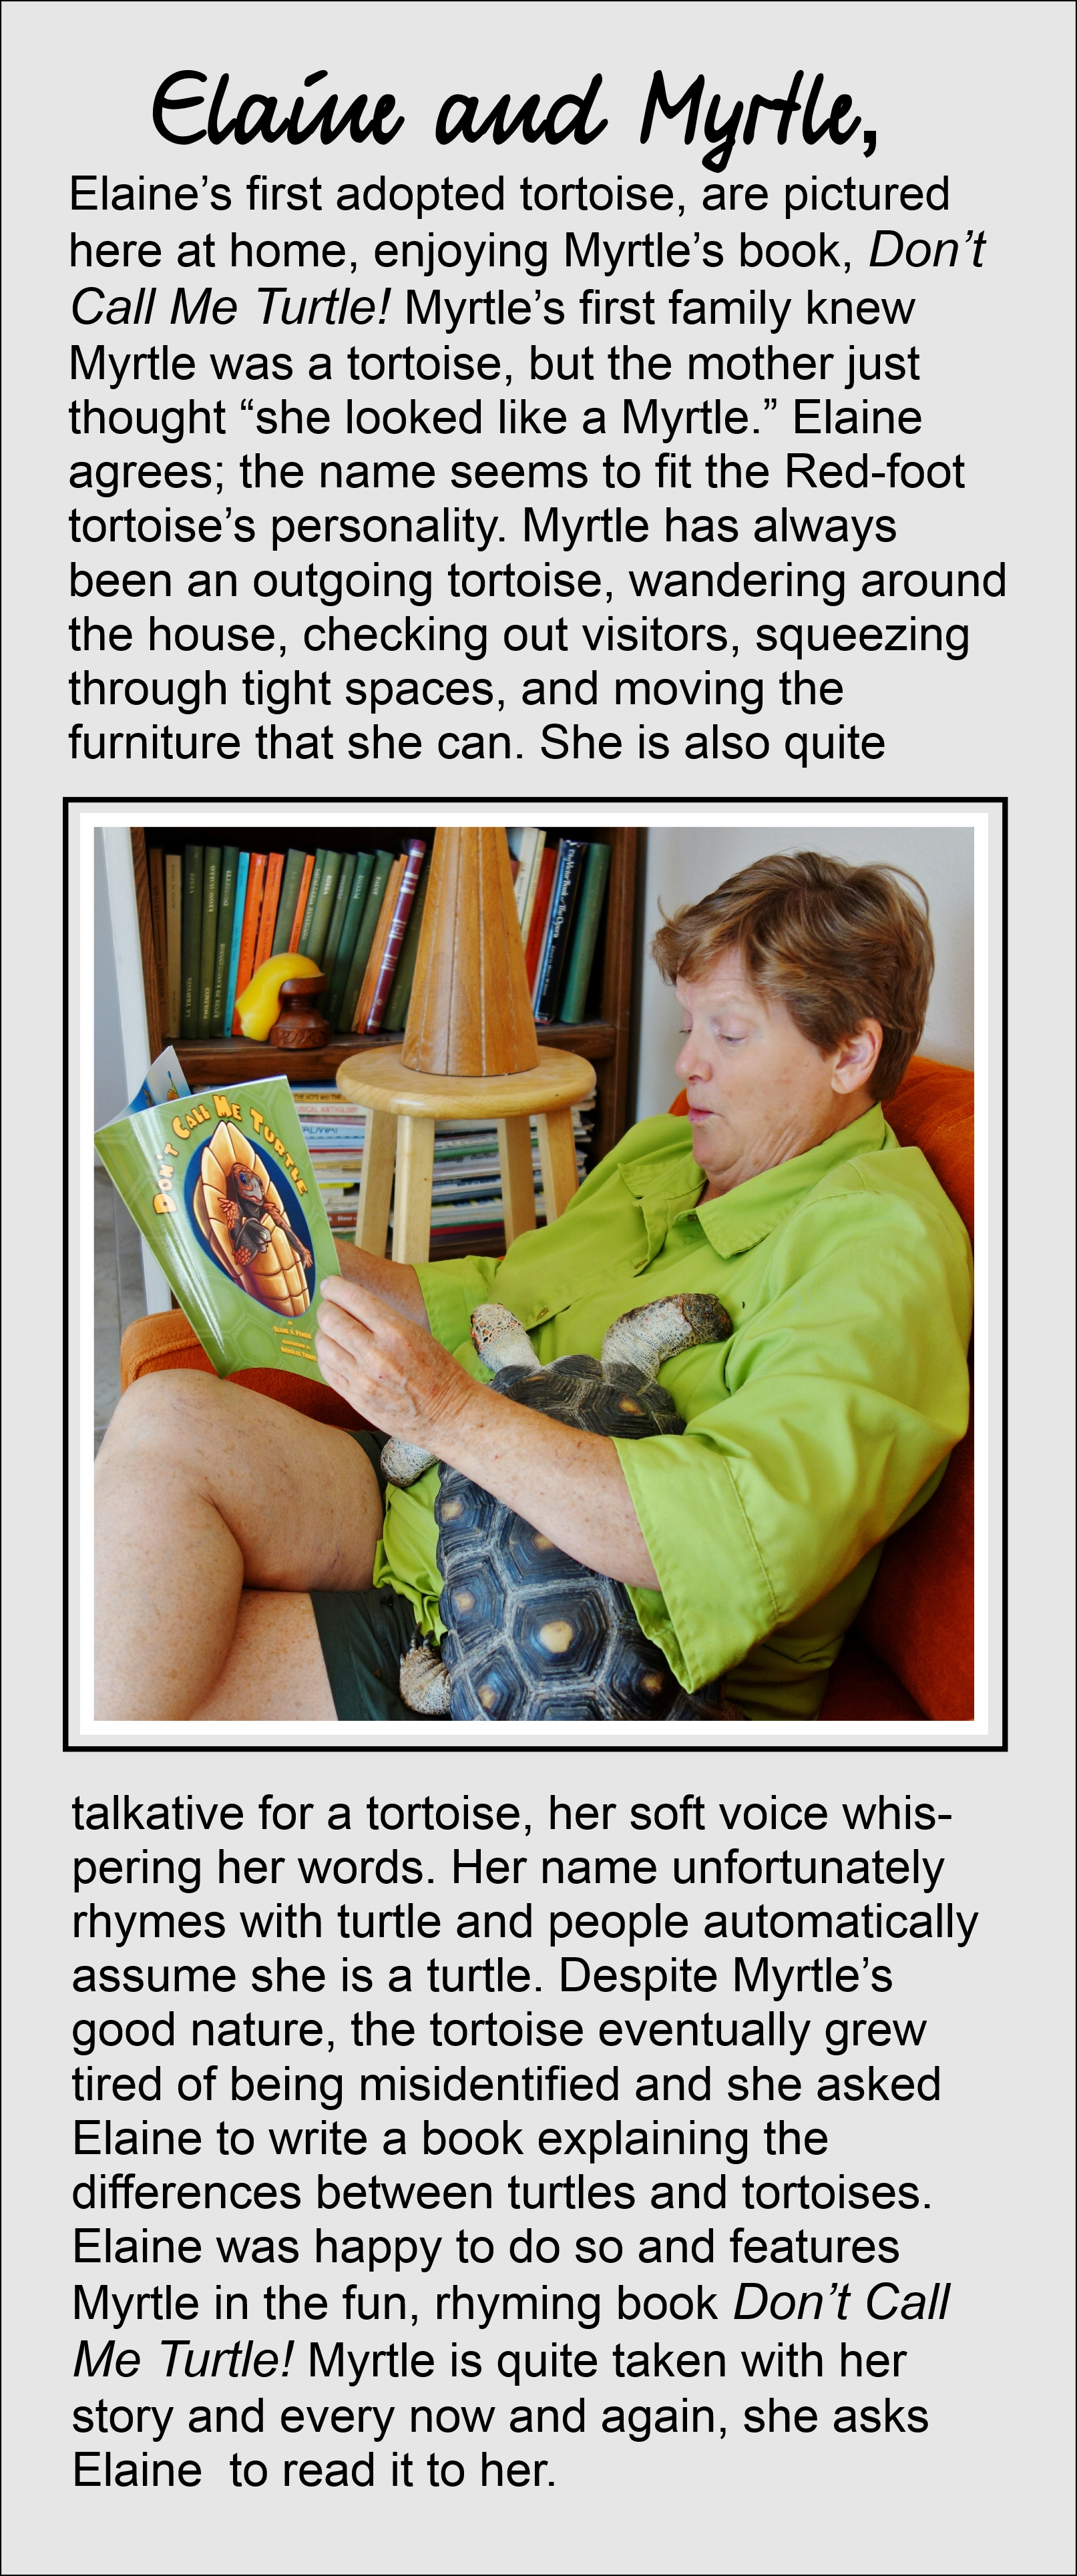 A woman reading a book about tortoises to a tortoise.